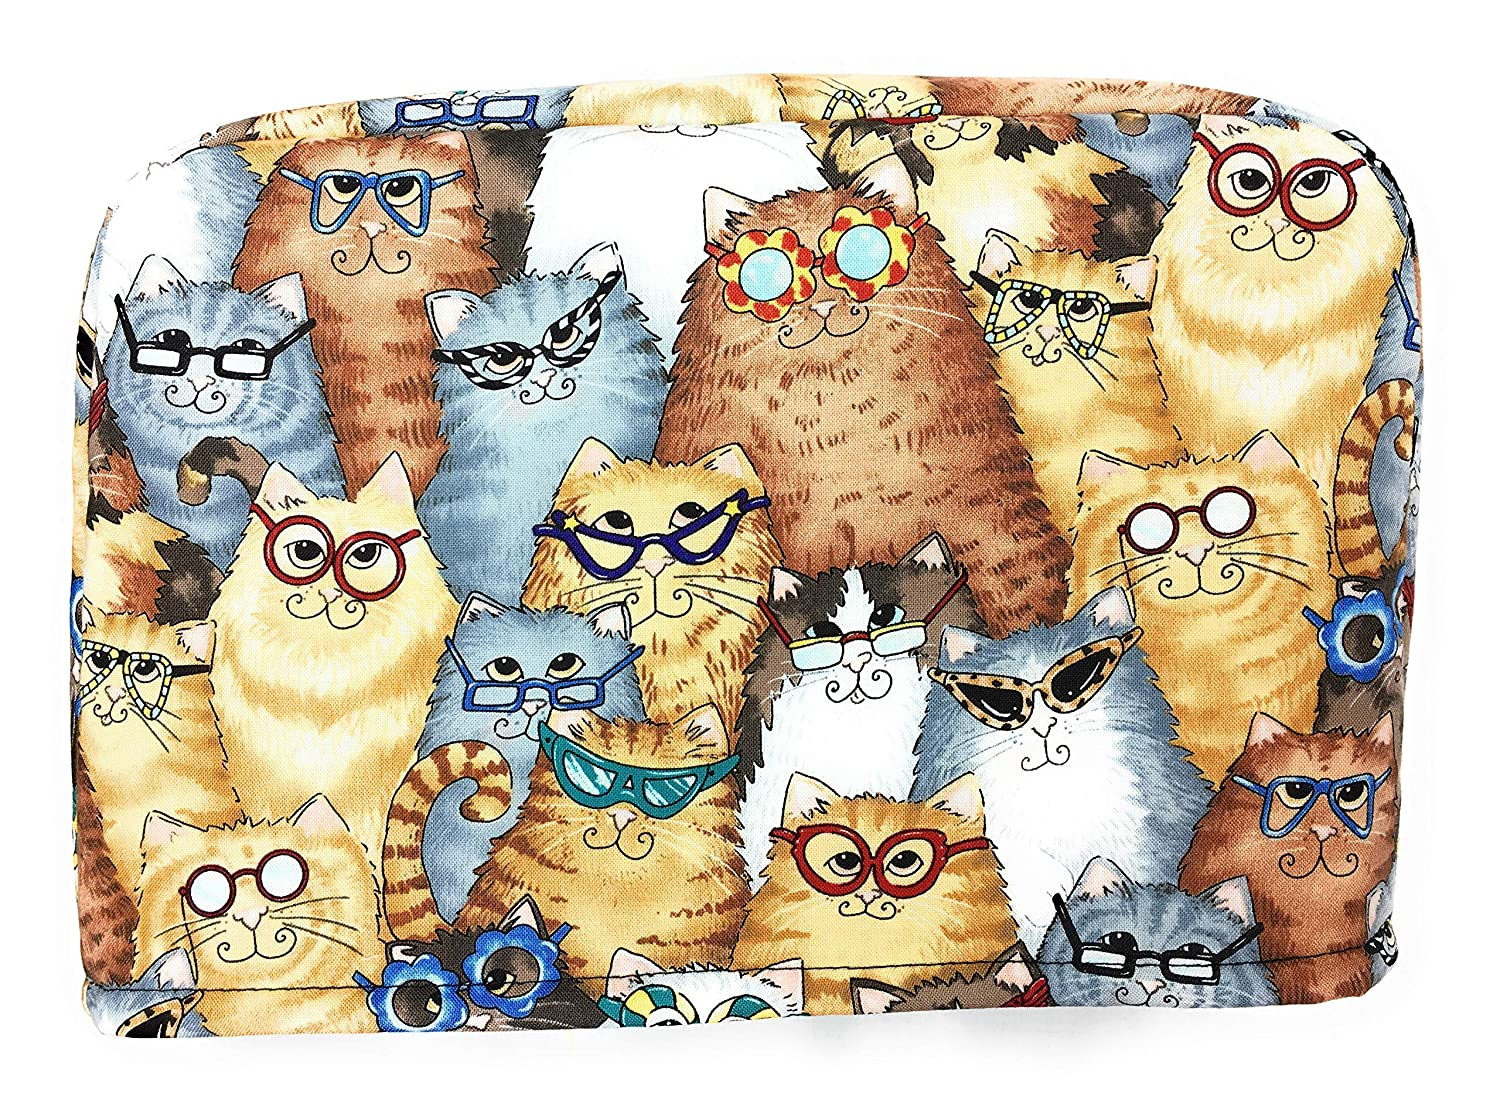 Whimsical Cats Kittens with Glasses Reversible Kitchen Toaster Appliance Dust Cover Cozy 11.5 h x 7.5 x 11.5 l w 4 Slice Slot